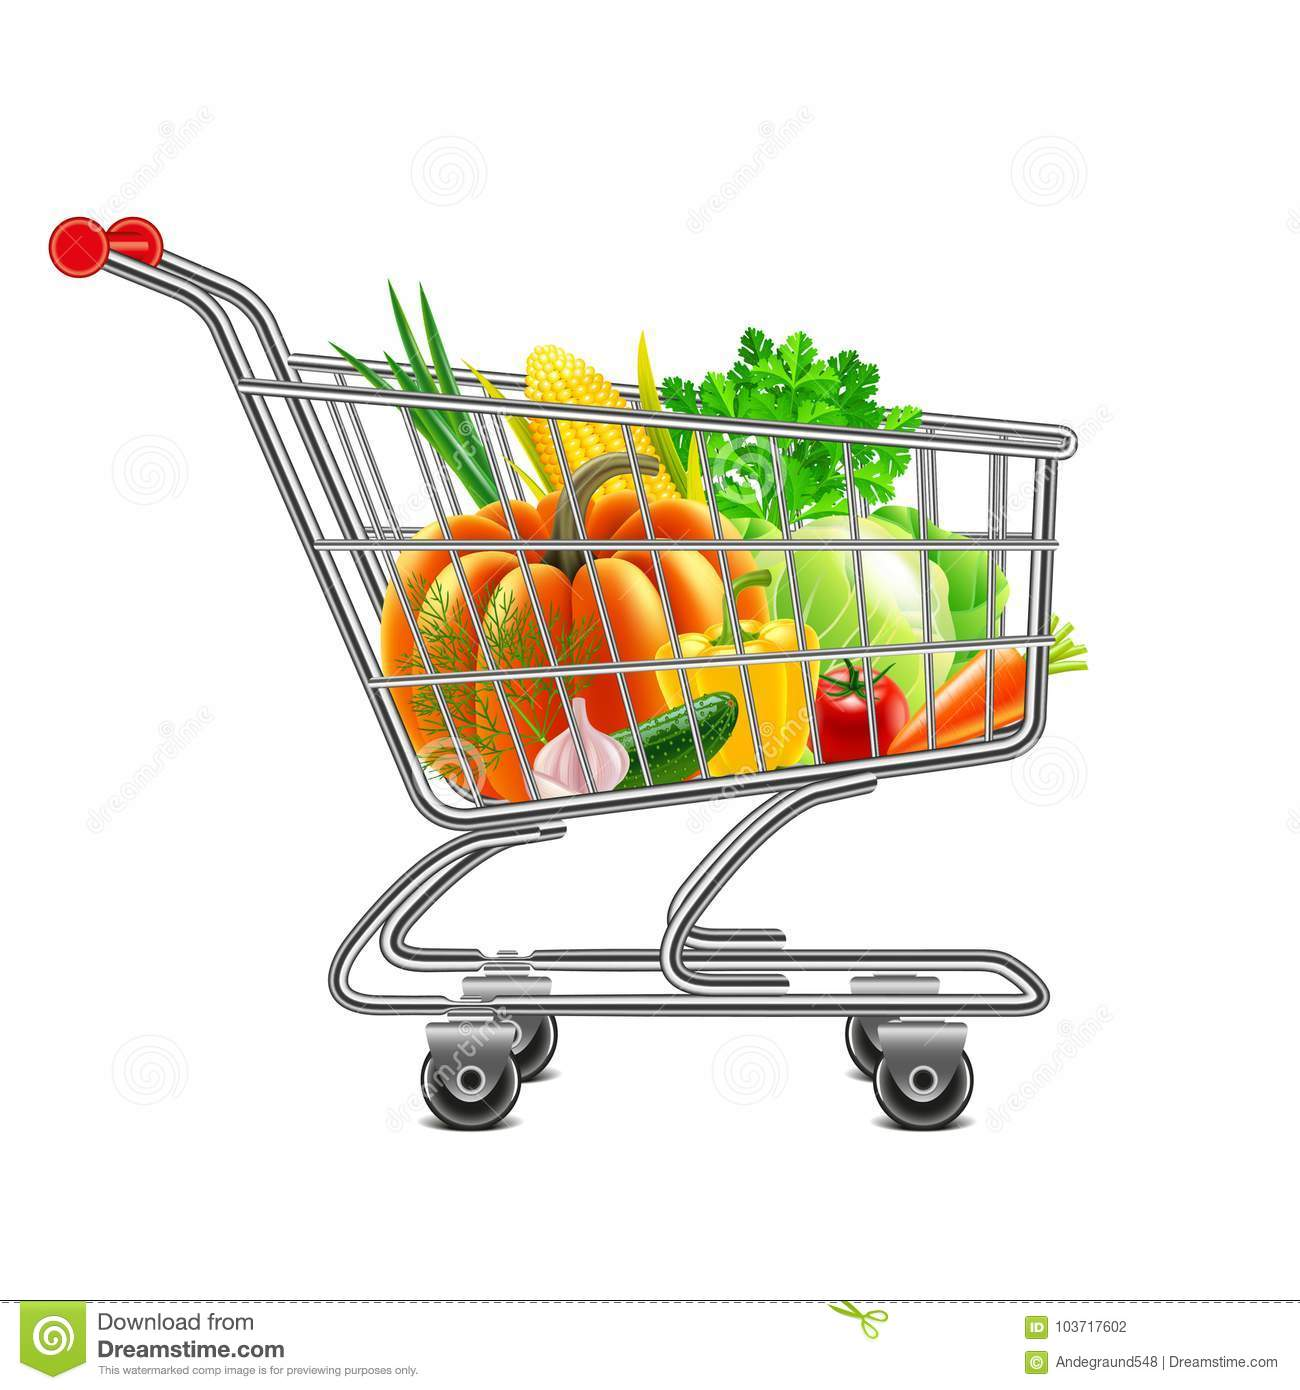 Vegetables in supermarket cart isolated vector